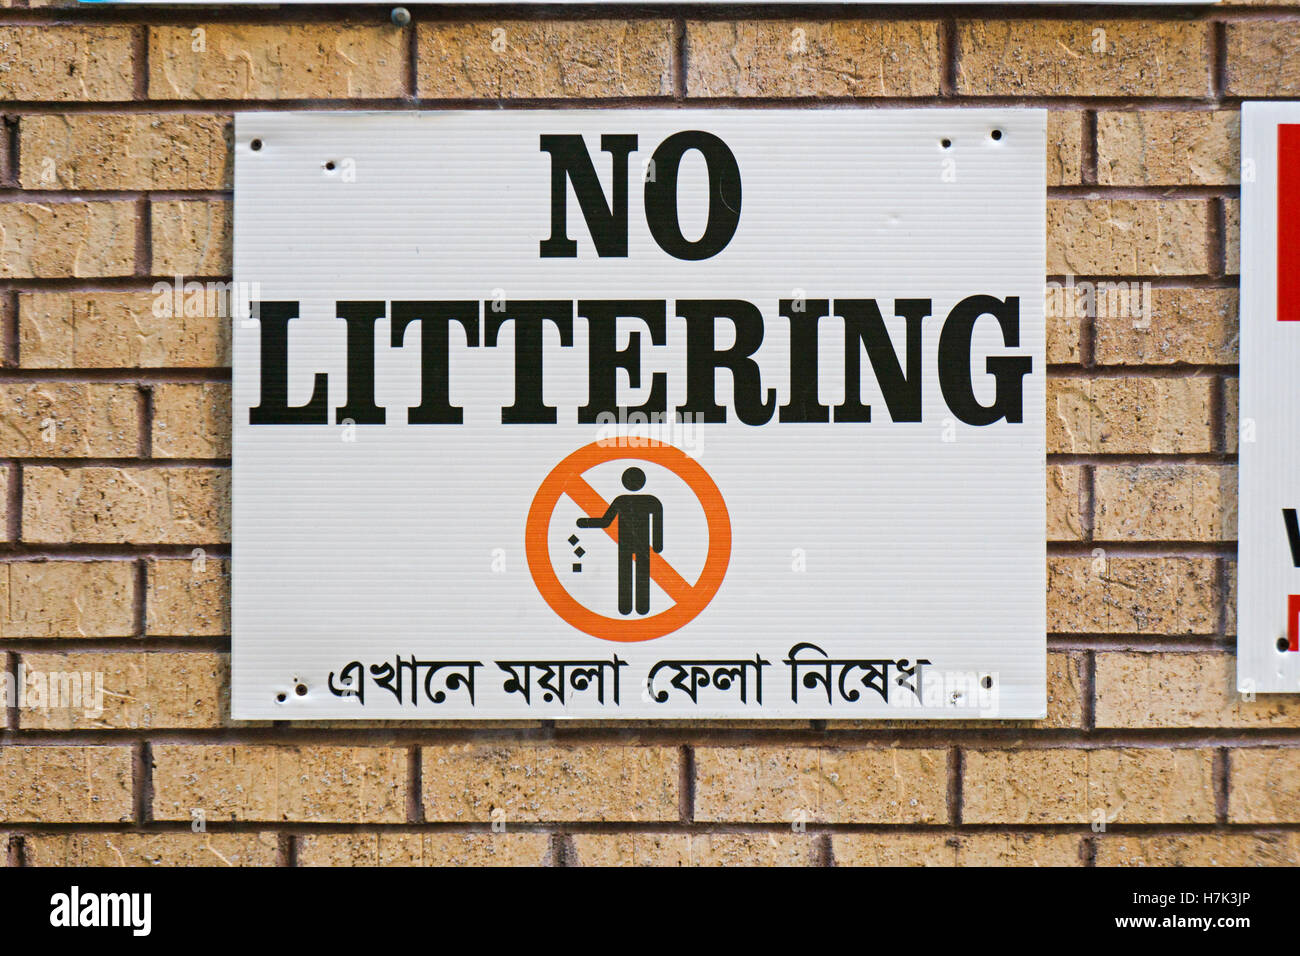 Un bilingue littering non firmare sia in inglese sia in lingua bengalese. In Jackson Heights, Queens, a New York Immagini Stock